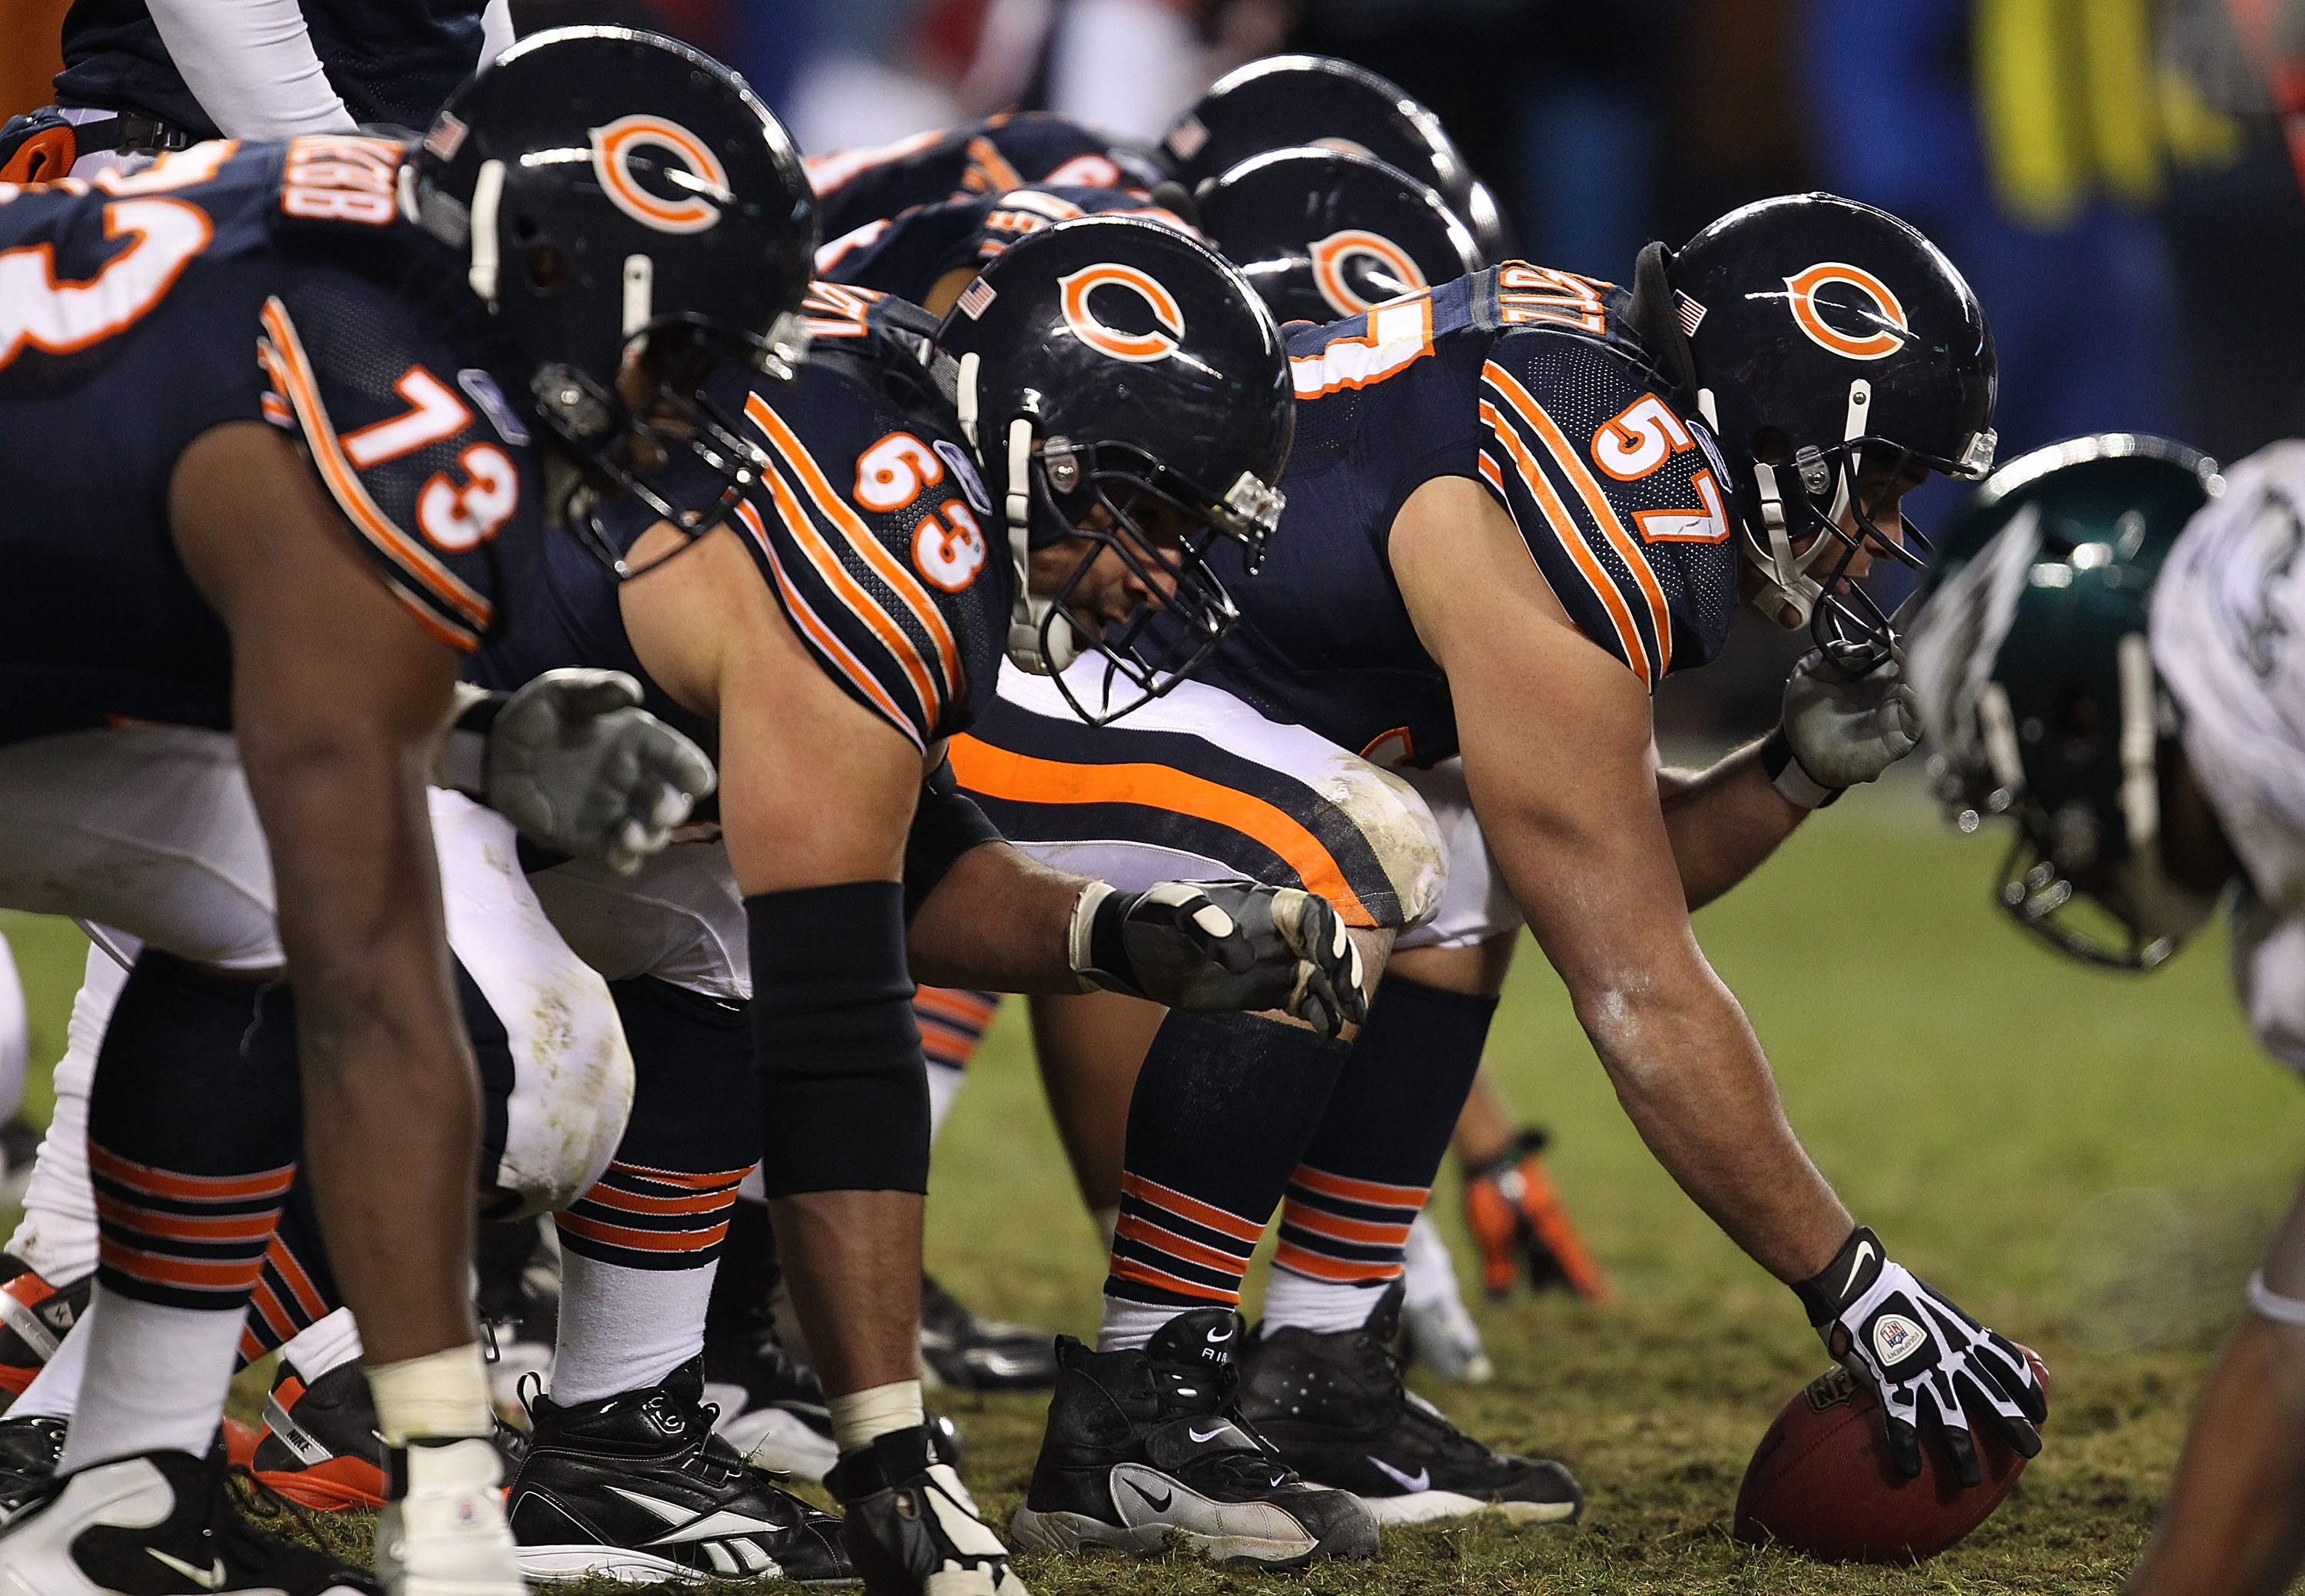 CHICAGO - NOVEMBER 28: (L-R) J'Marcus Webb #73 and Roberto Garza #63 of the Chicago Bears await the snap of Olin Kreutz #57 against the Philadelphia Eagles at Soldier Field on November 28, 2010 in Chicago, Illinois. The Bears defeated the Eagles 31-26. (P